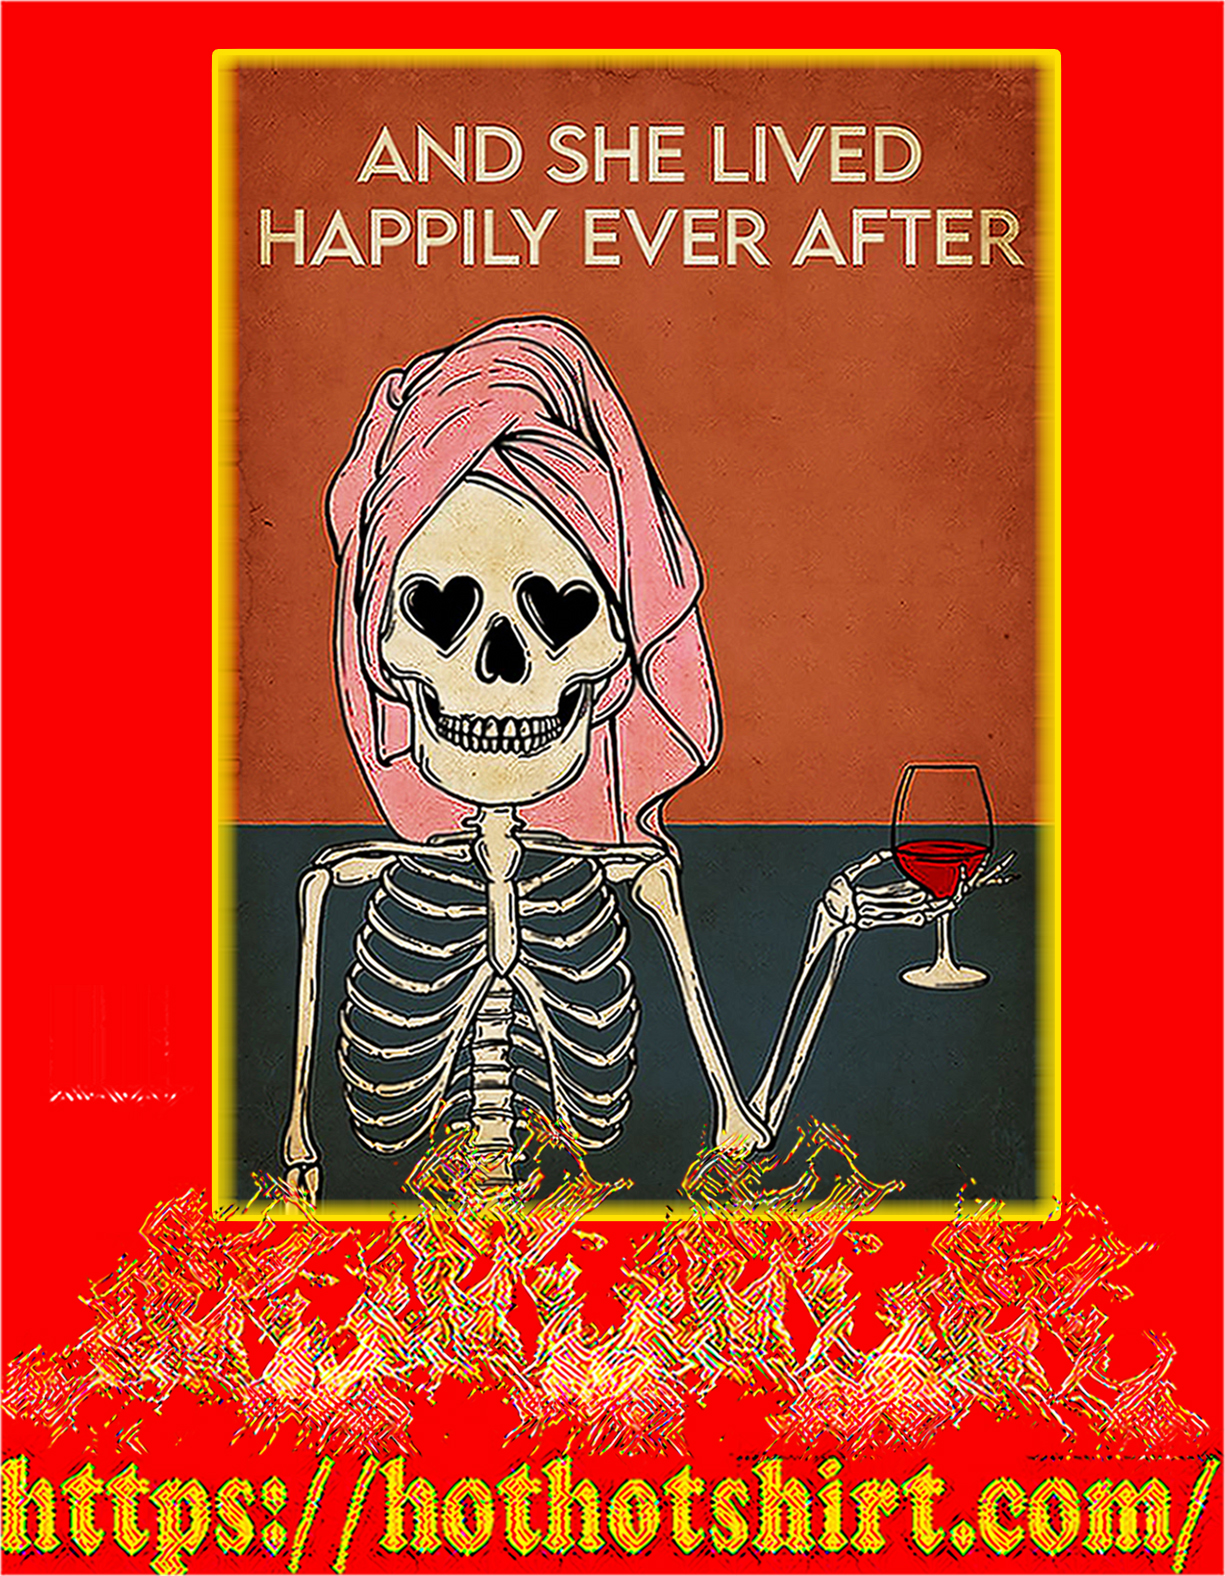 Skeleton wine And she lived happily ever after poster - A4